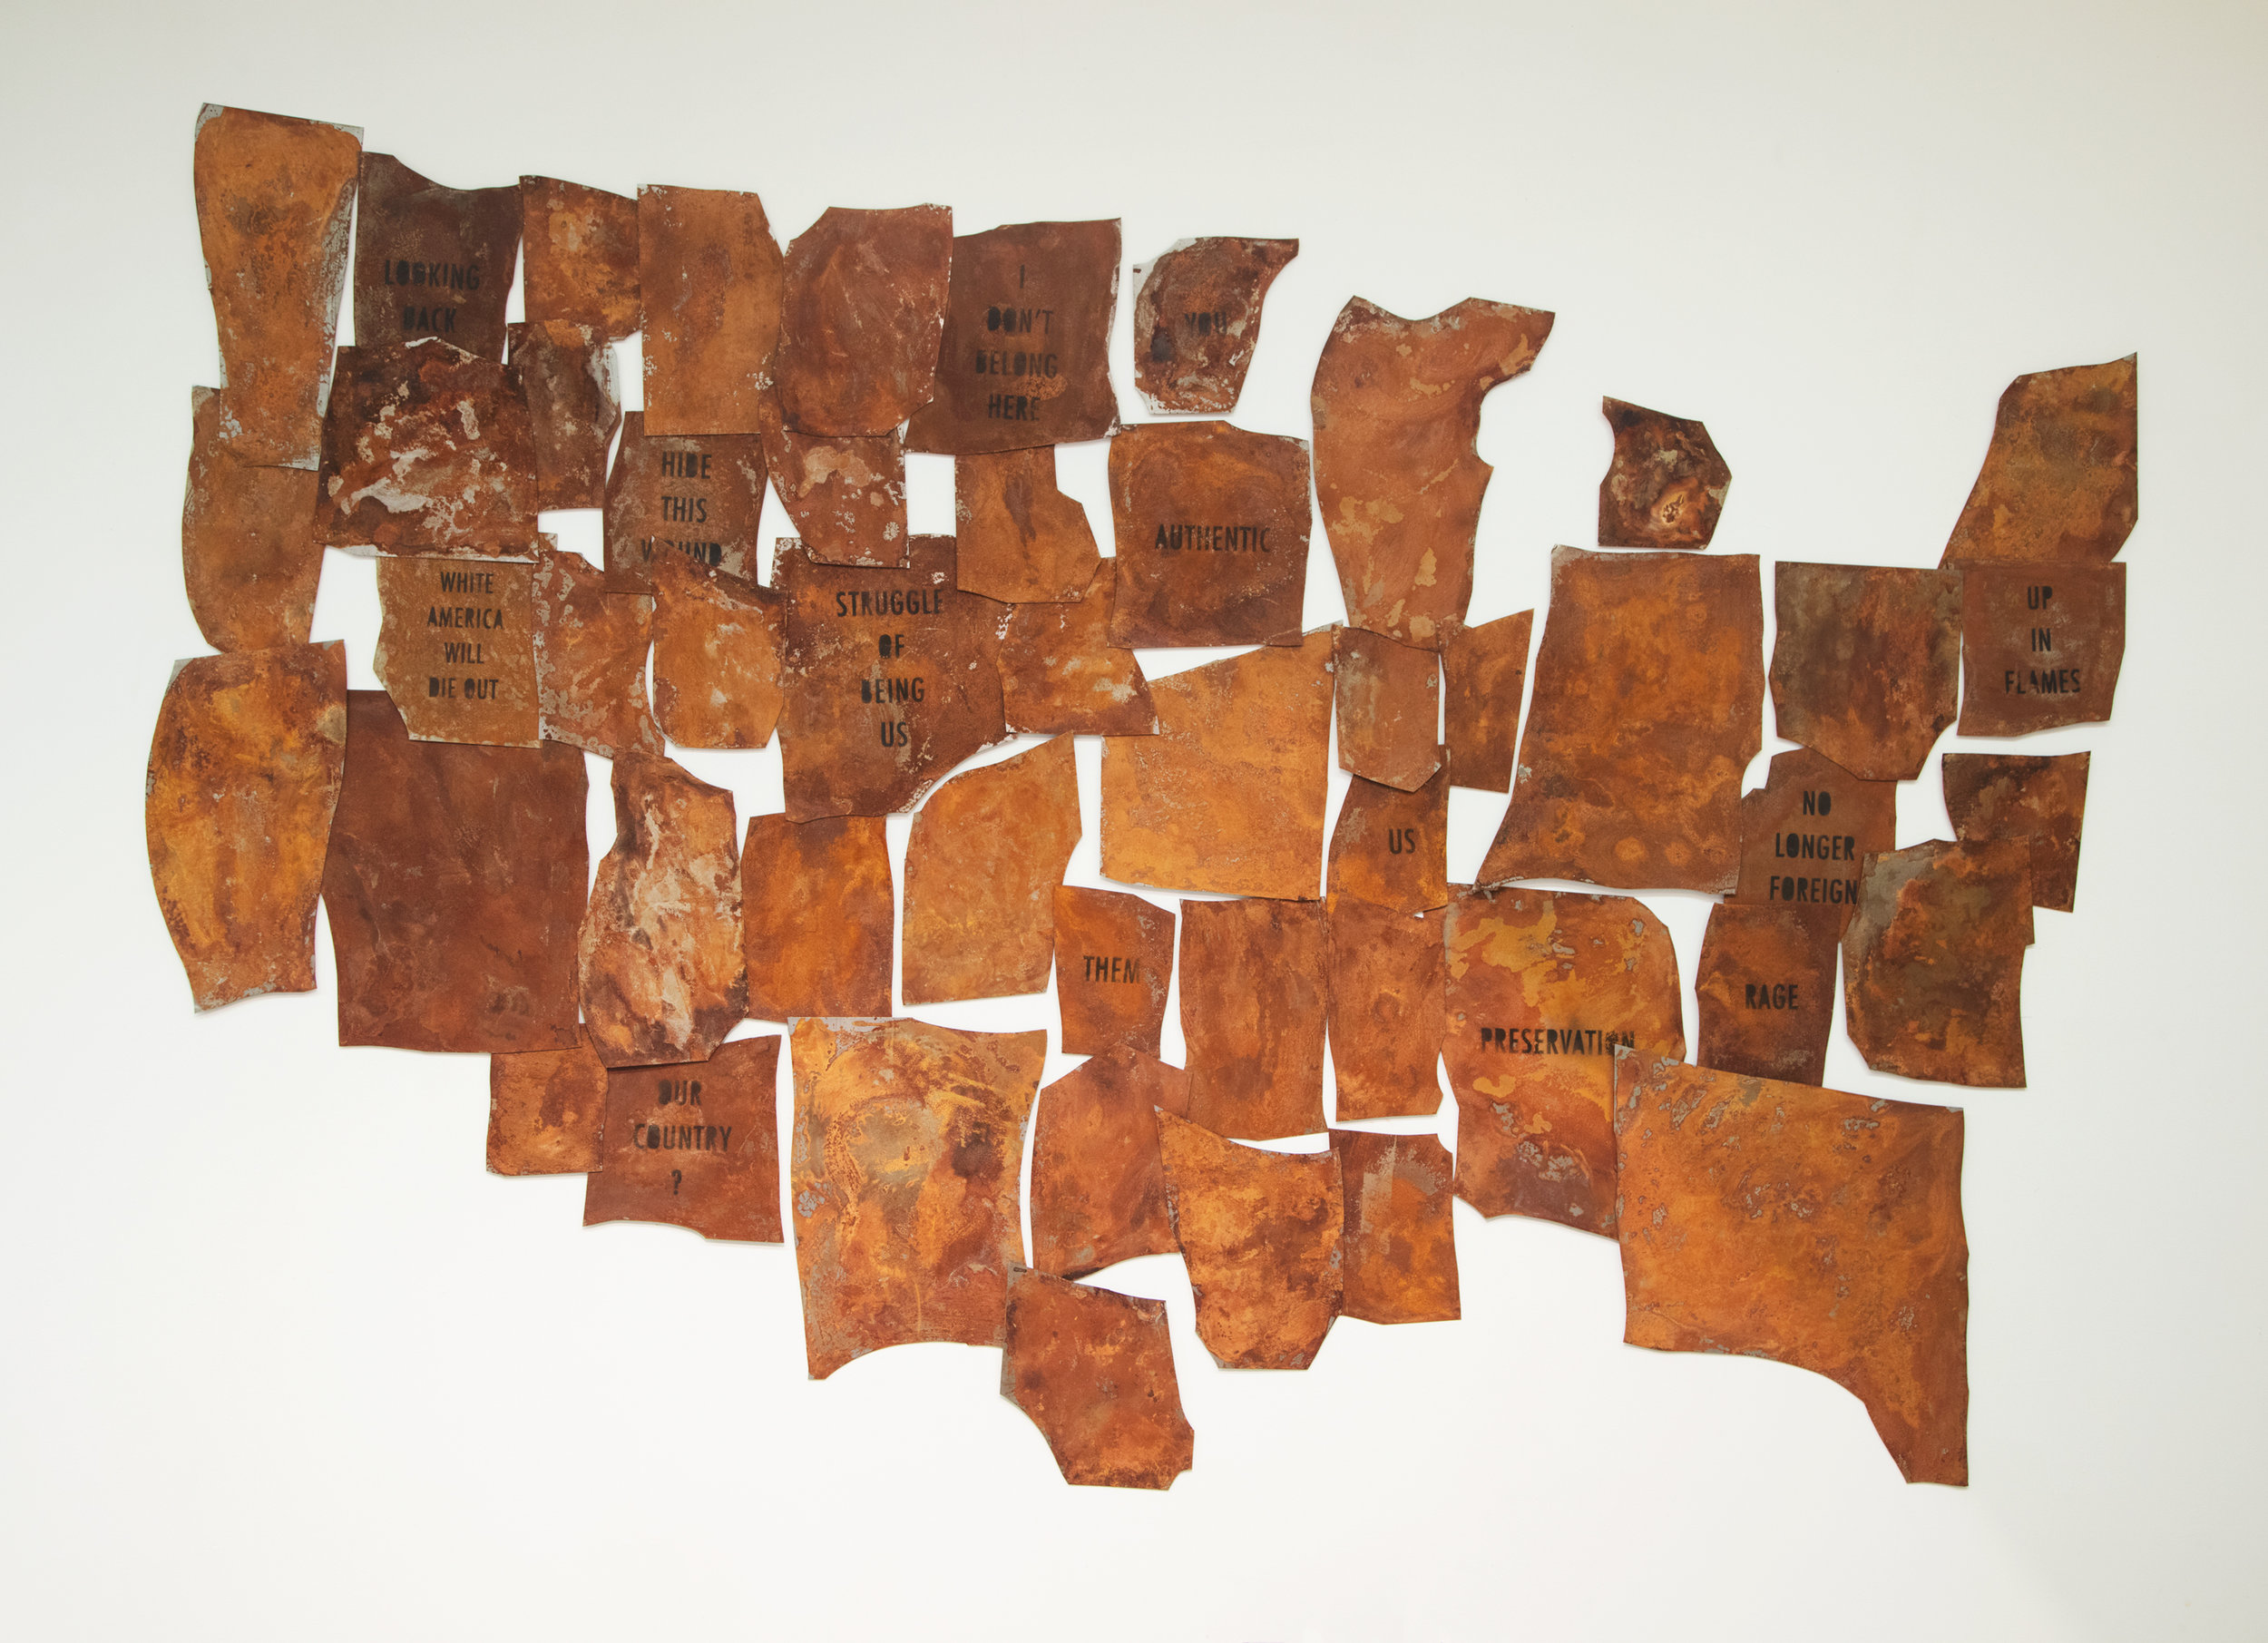 Rupture, 2017  rusted steel, urethane paint  132 x 108 inches  50 hand cut and rusted steel plates